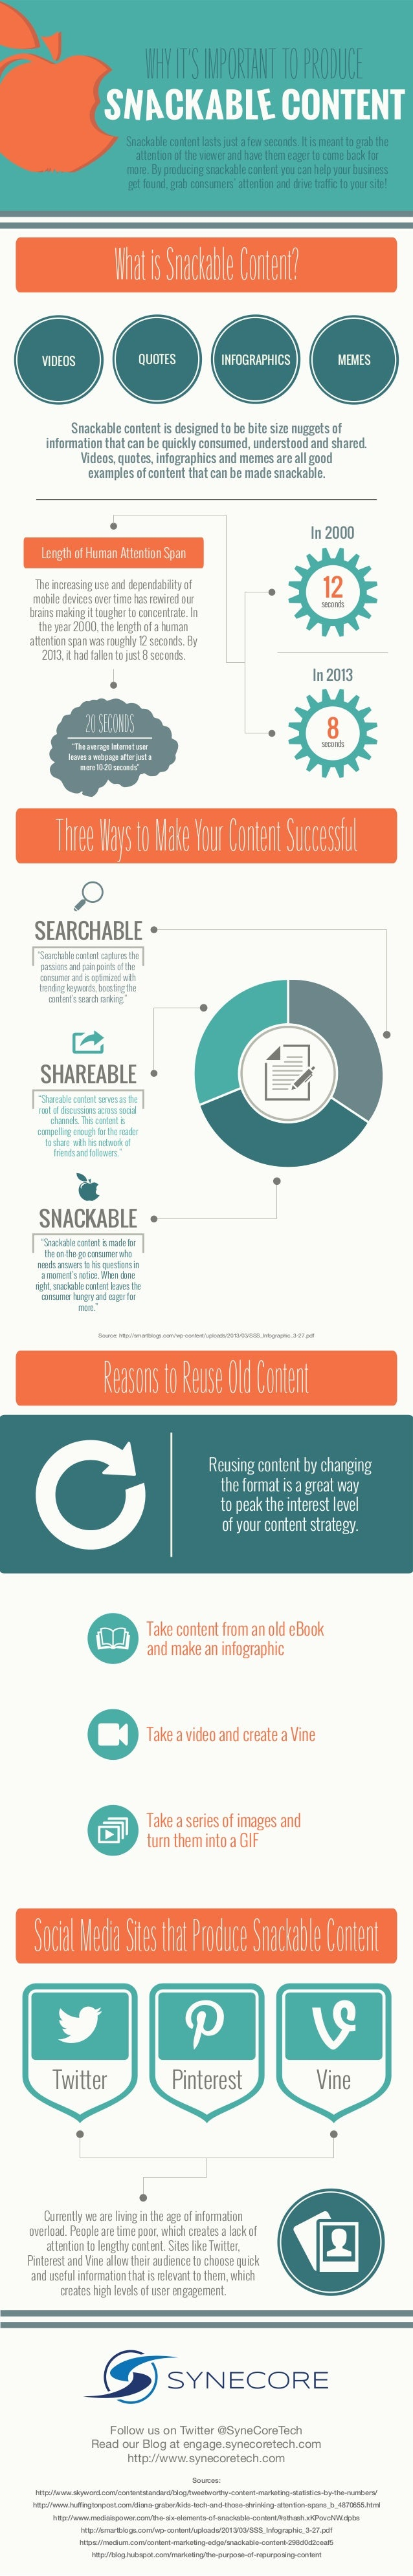 Snackable content lasts just a few seconds. It is meant to grab the attention of the viewer and have them eager to come ba...